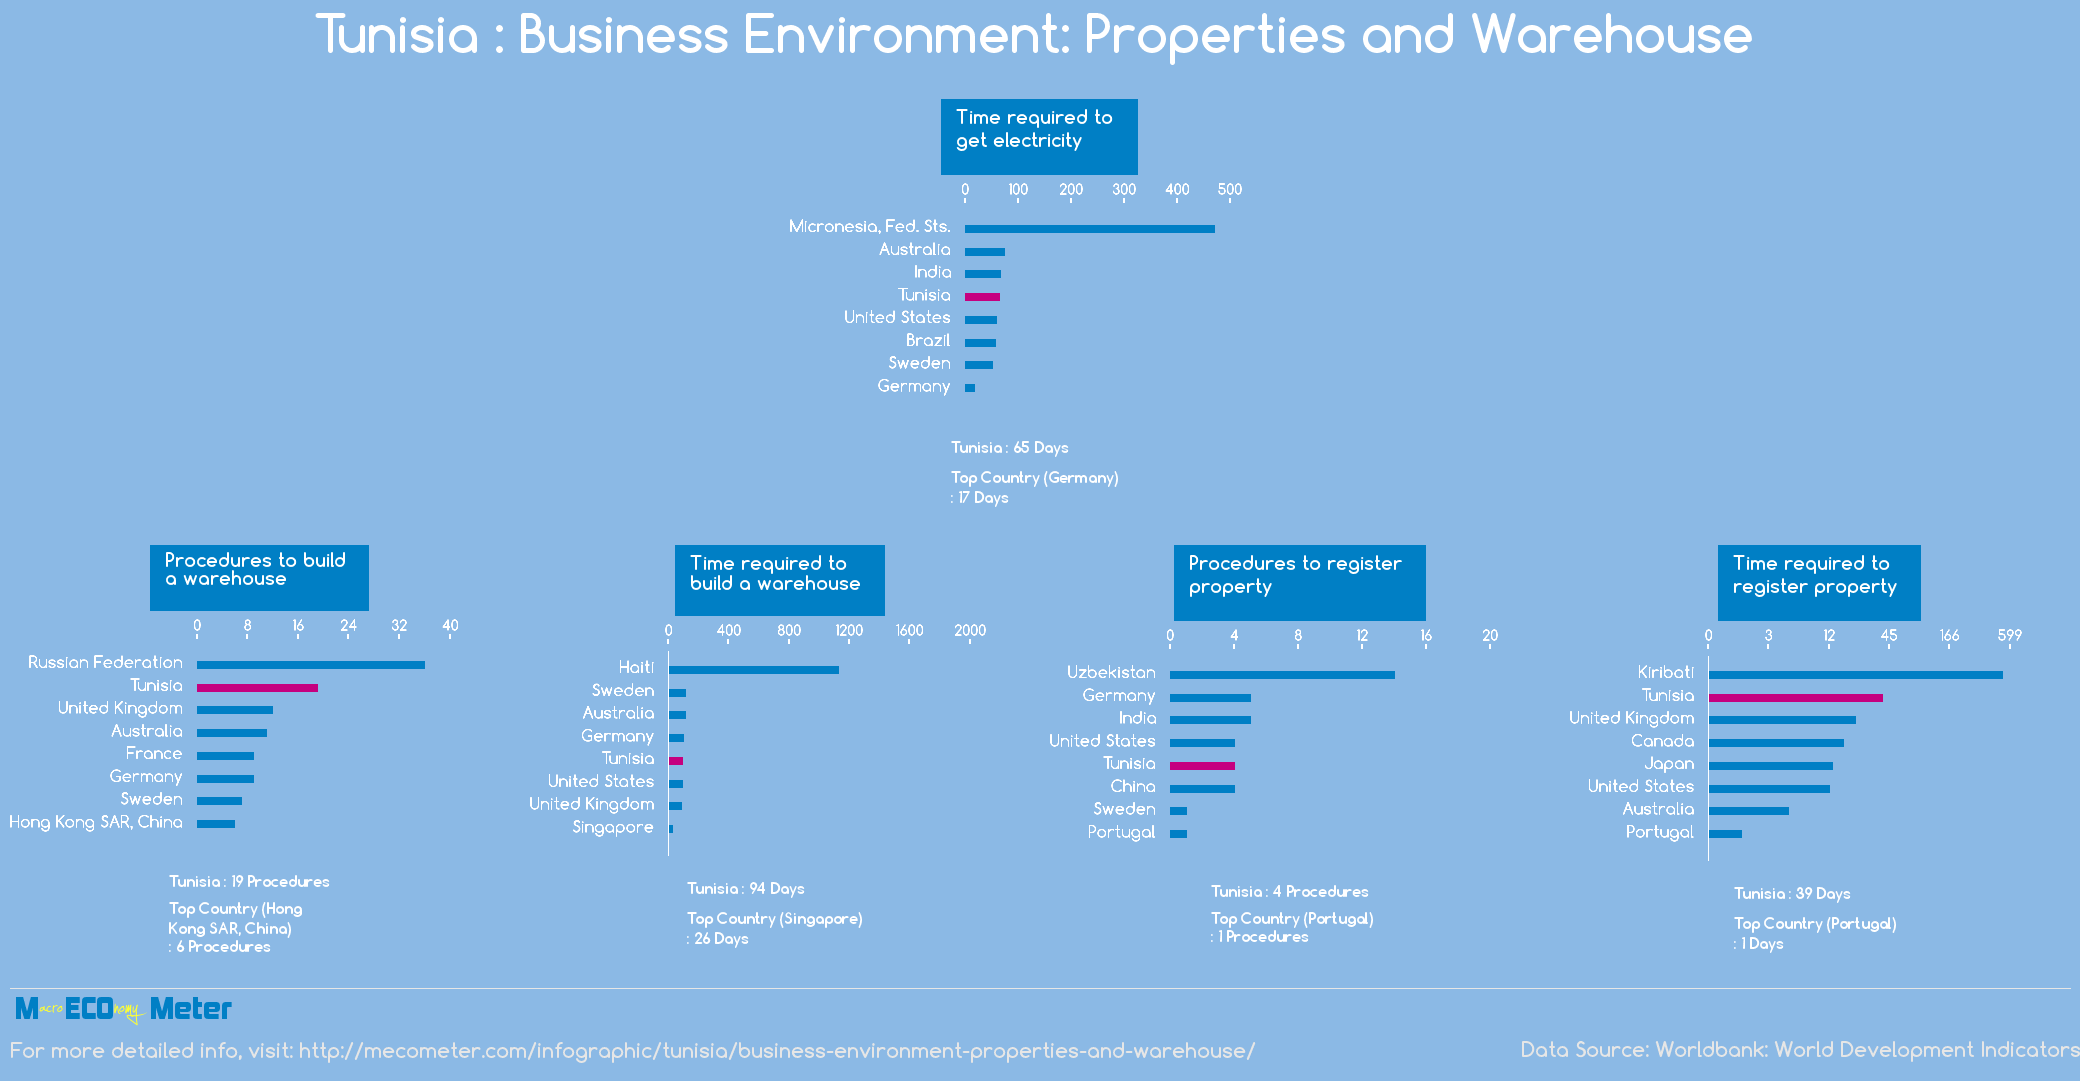 Tunisia : Business Environment: Properties and Warehouse